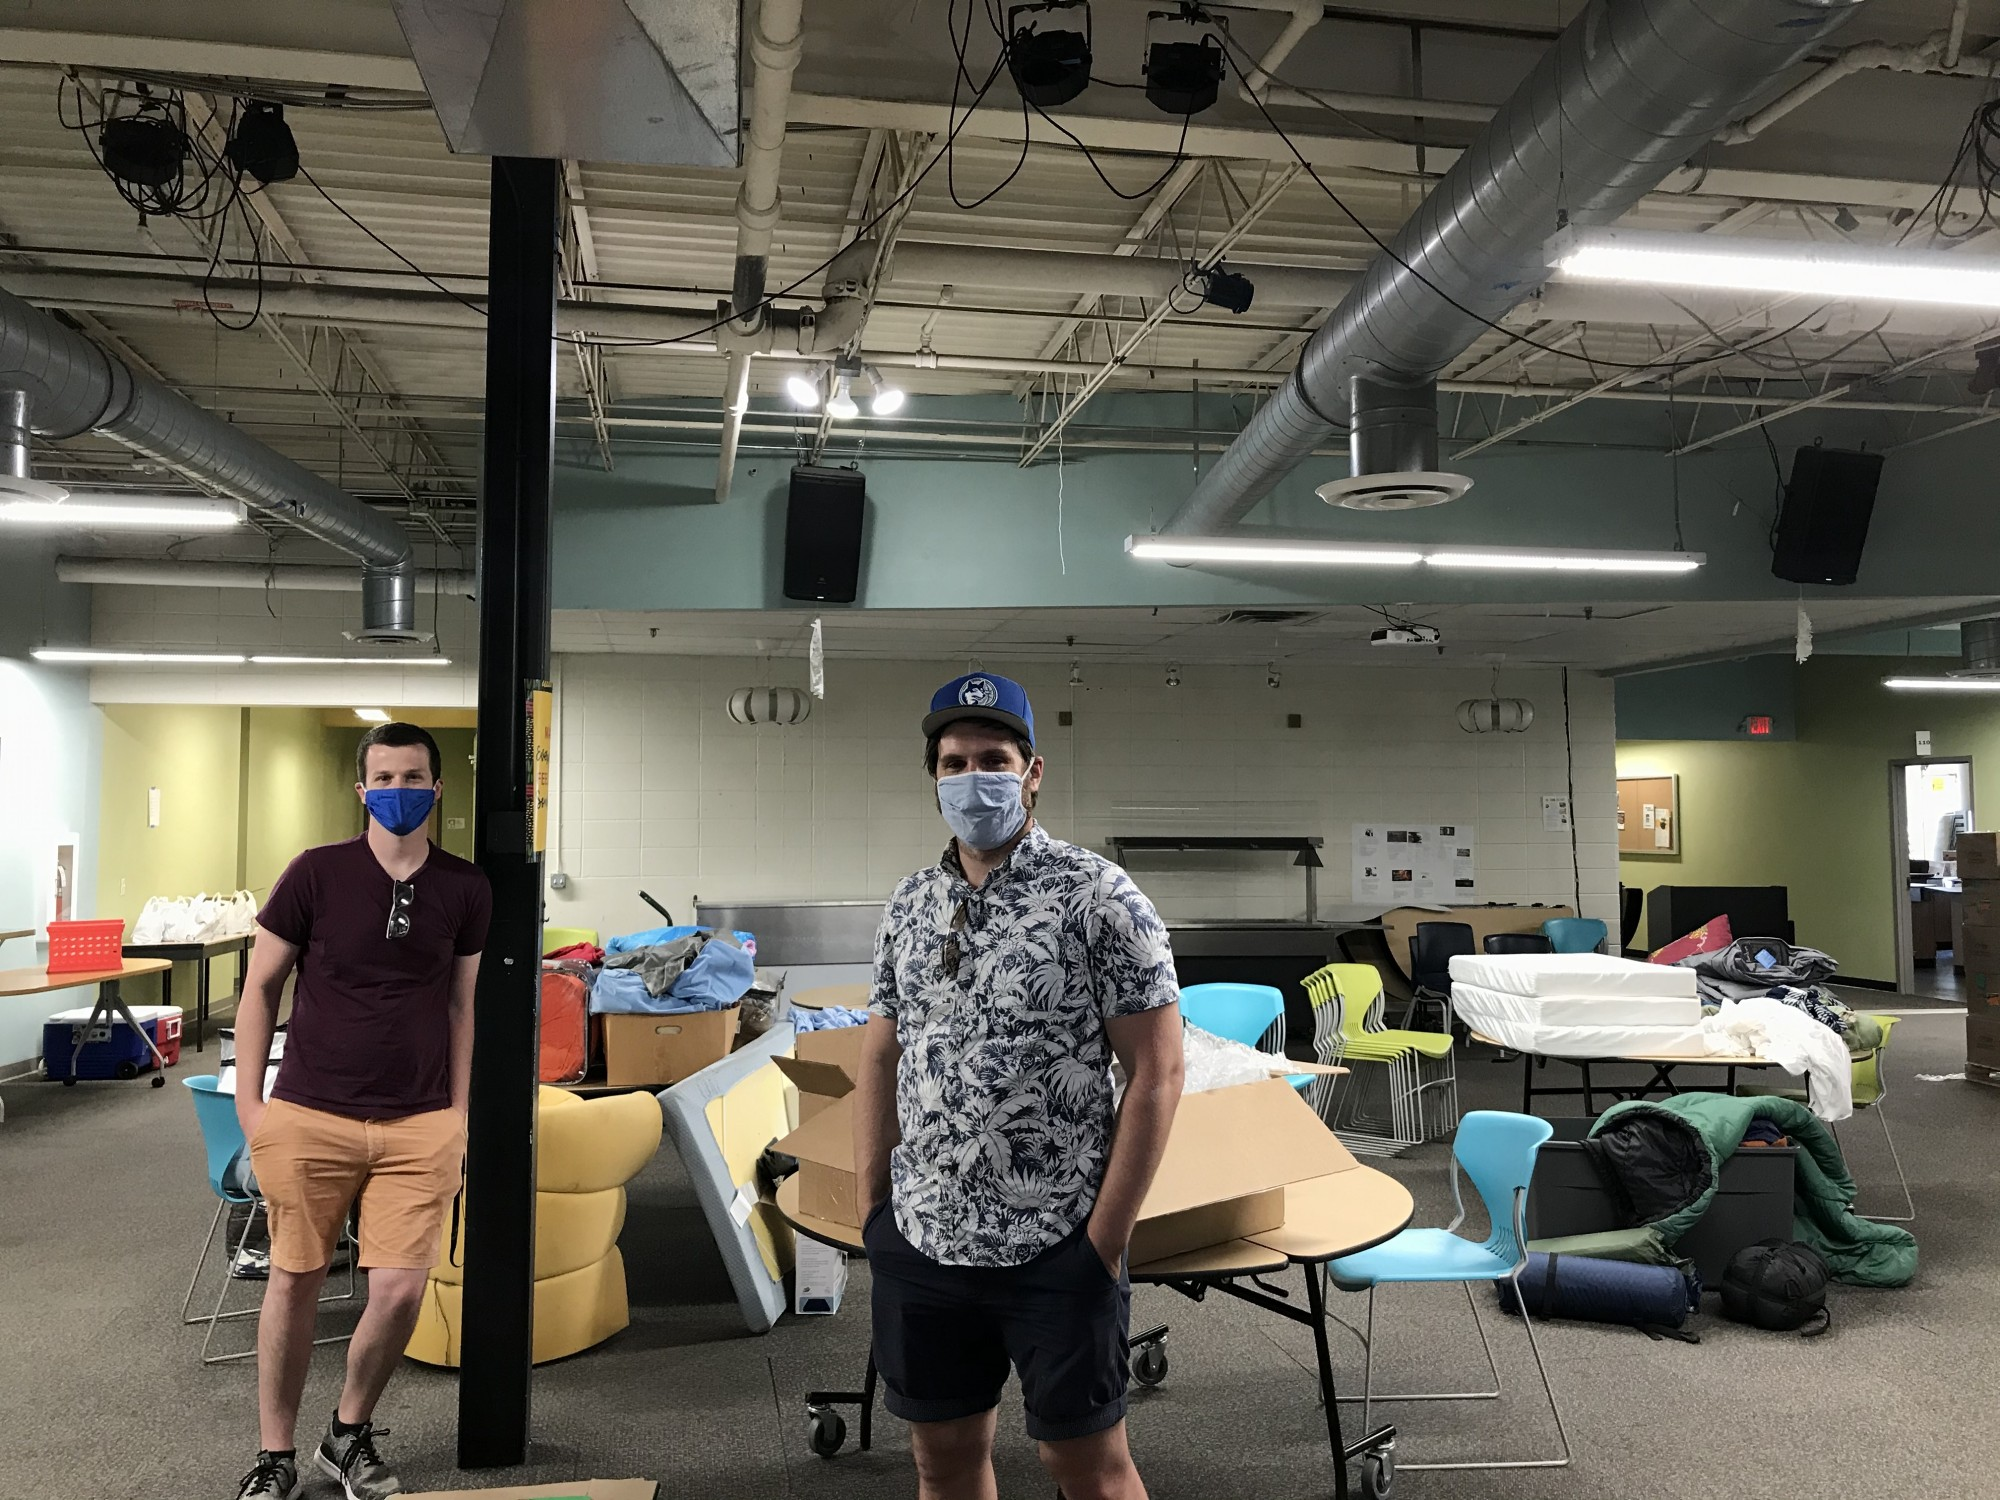 <p>Mike Buttgereit, left, and Michael Warner, right, stand for a portrait in a central hall at Venture Academy on Saturday evening. The public charter school is open over the weekend as a shelter for families seeking refuge from protests and unrest.</p>